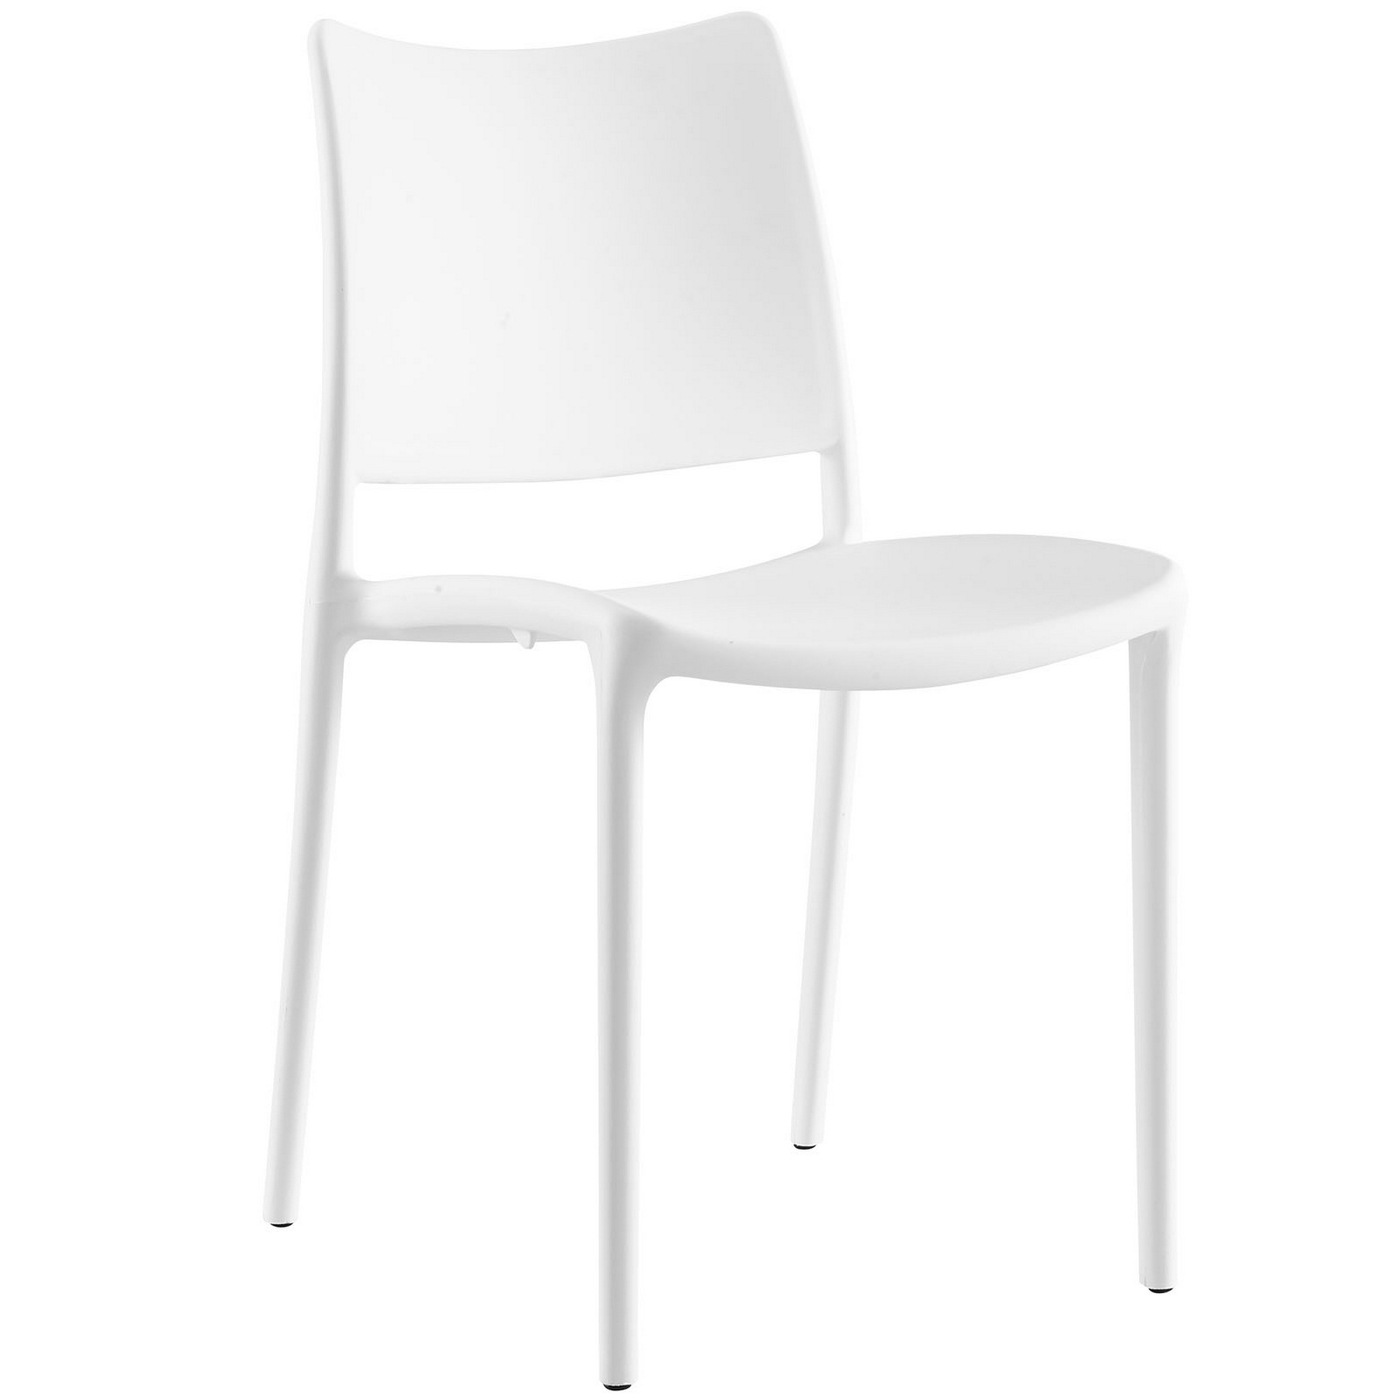 hipster contemporary stackable plastic dining side chair white. Black Bedroom Furniture Sets. Home Design Ideas